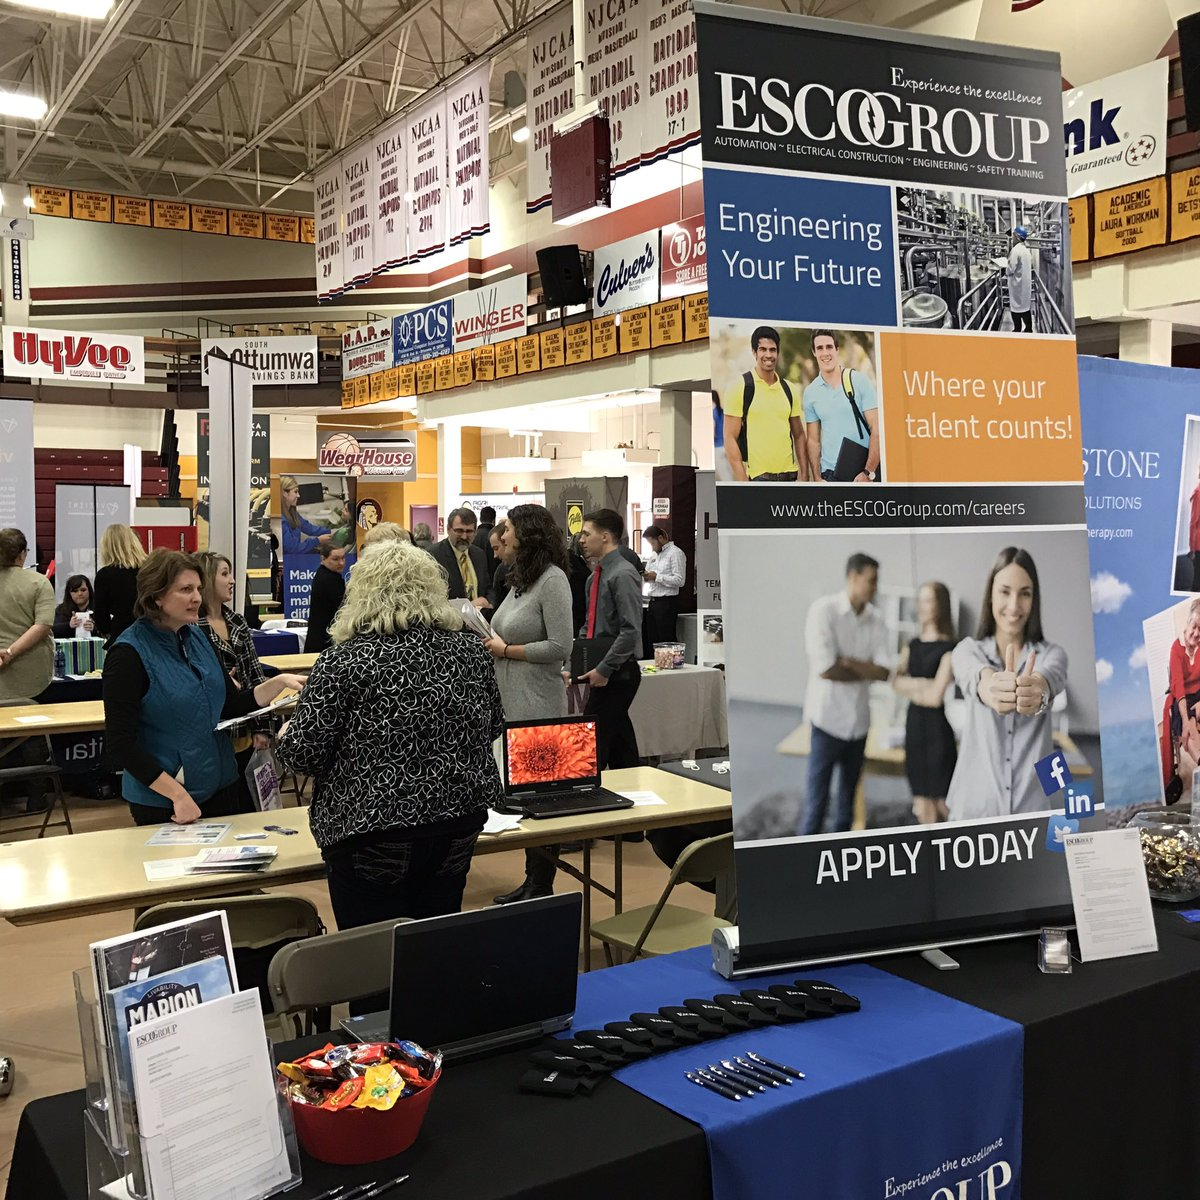 Attending the Southern Iowa Career Fair today @indianhills . We are talking to students about automation internships! #SoIACareerFair <br>http://pic.twitter.com/Tzx7IyIIOj